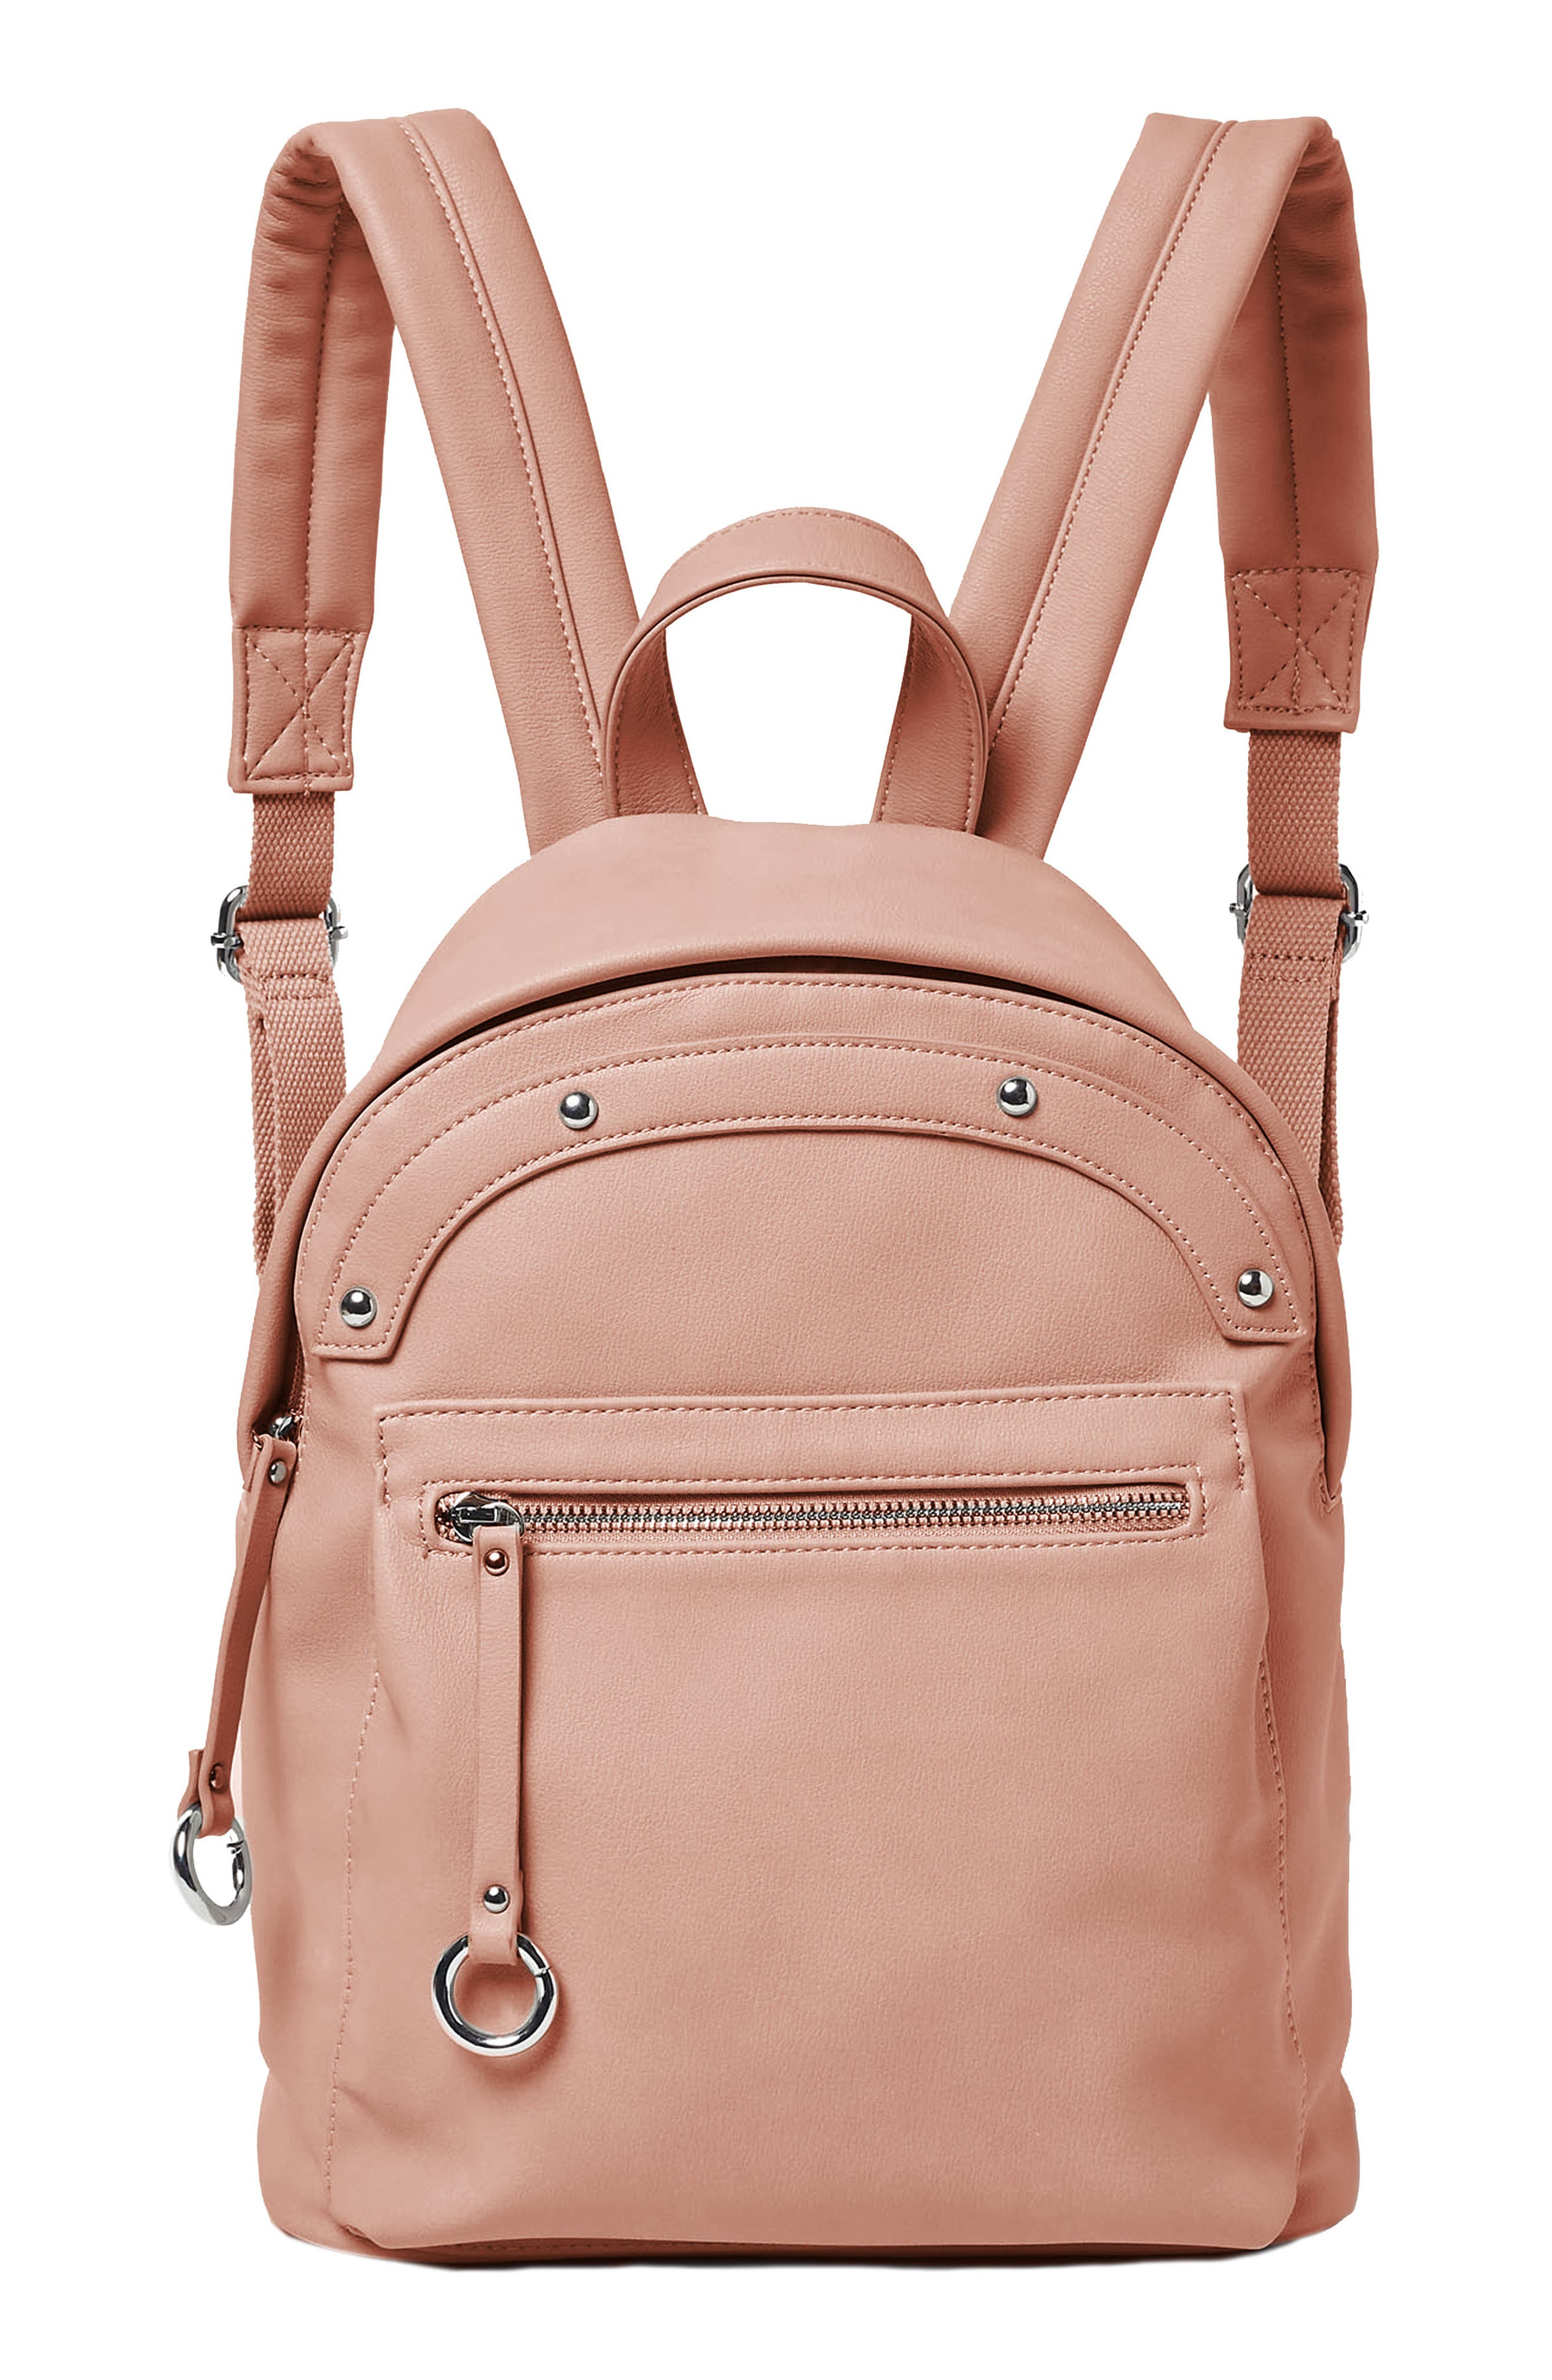 VEGAN LEATHER SUNNY DAY BACKPACK - BEIGE